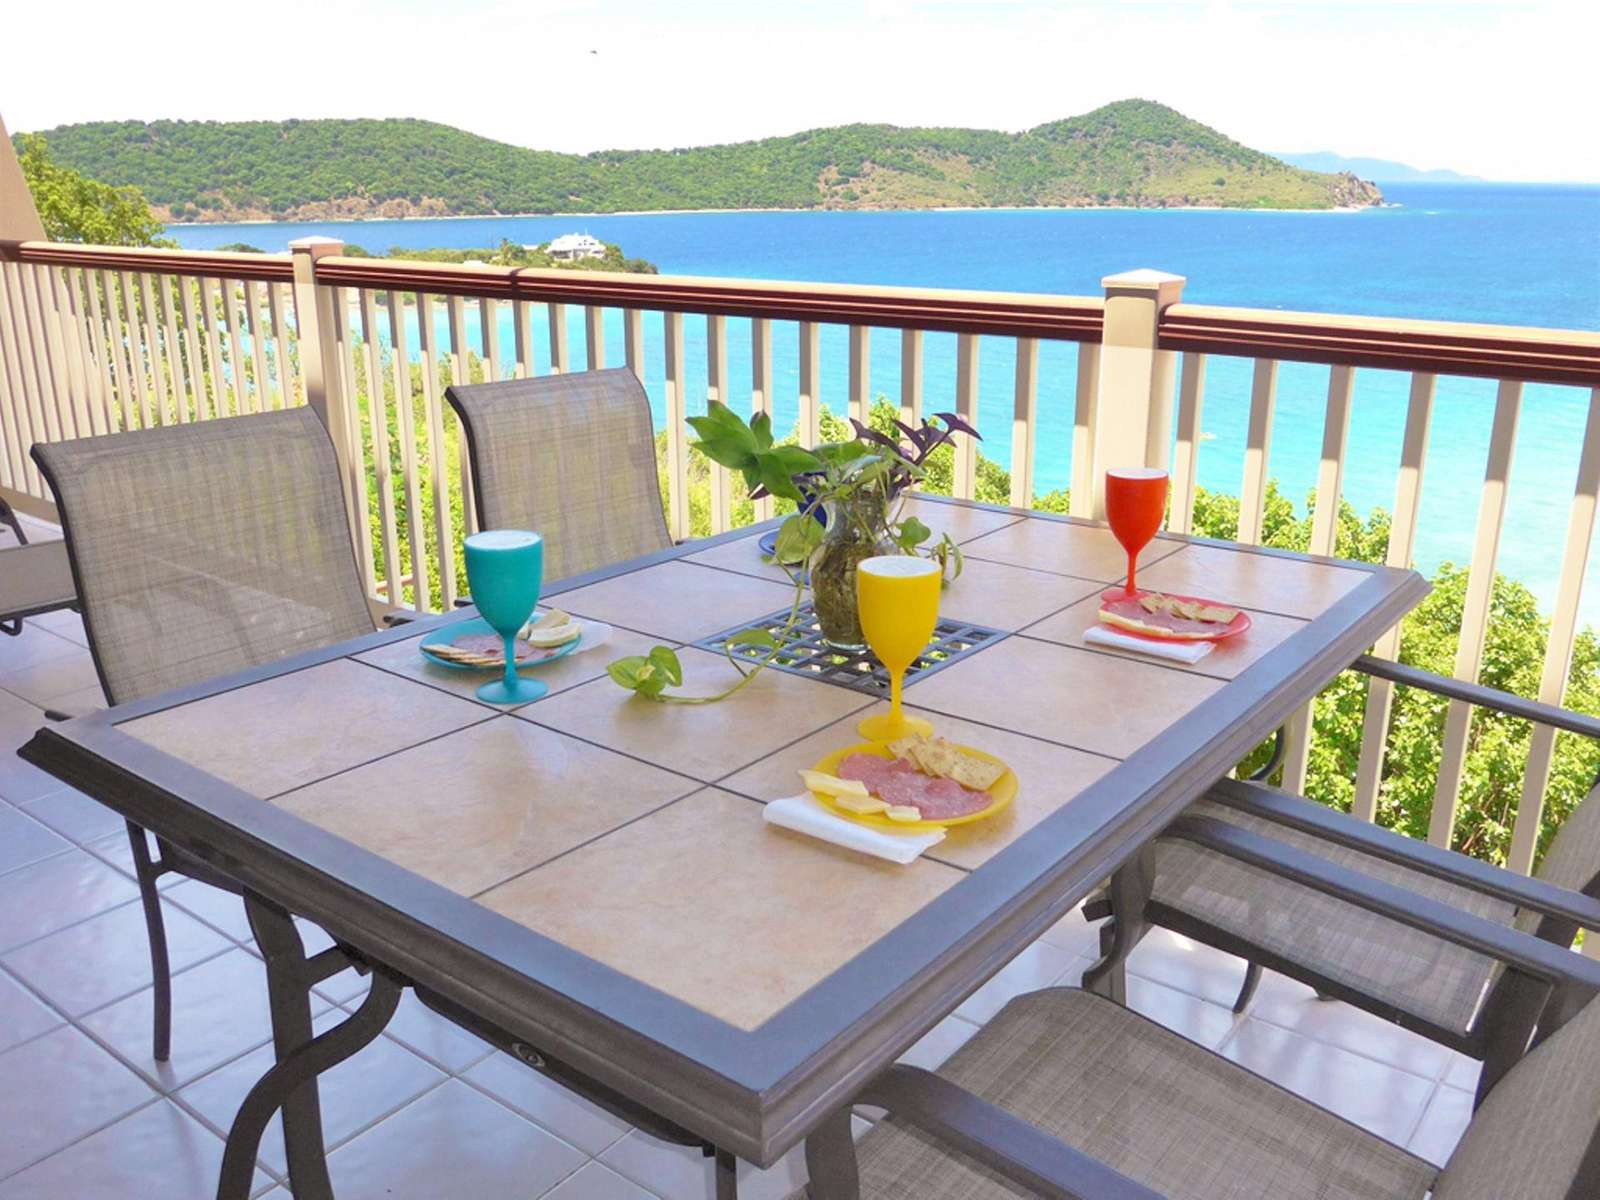 Dining and Drinks on the Balcony